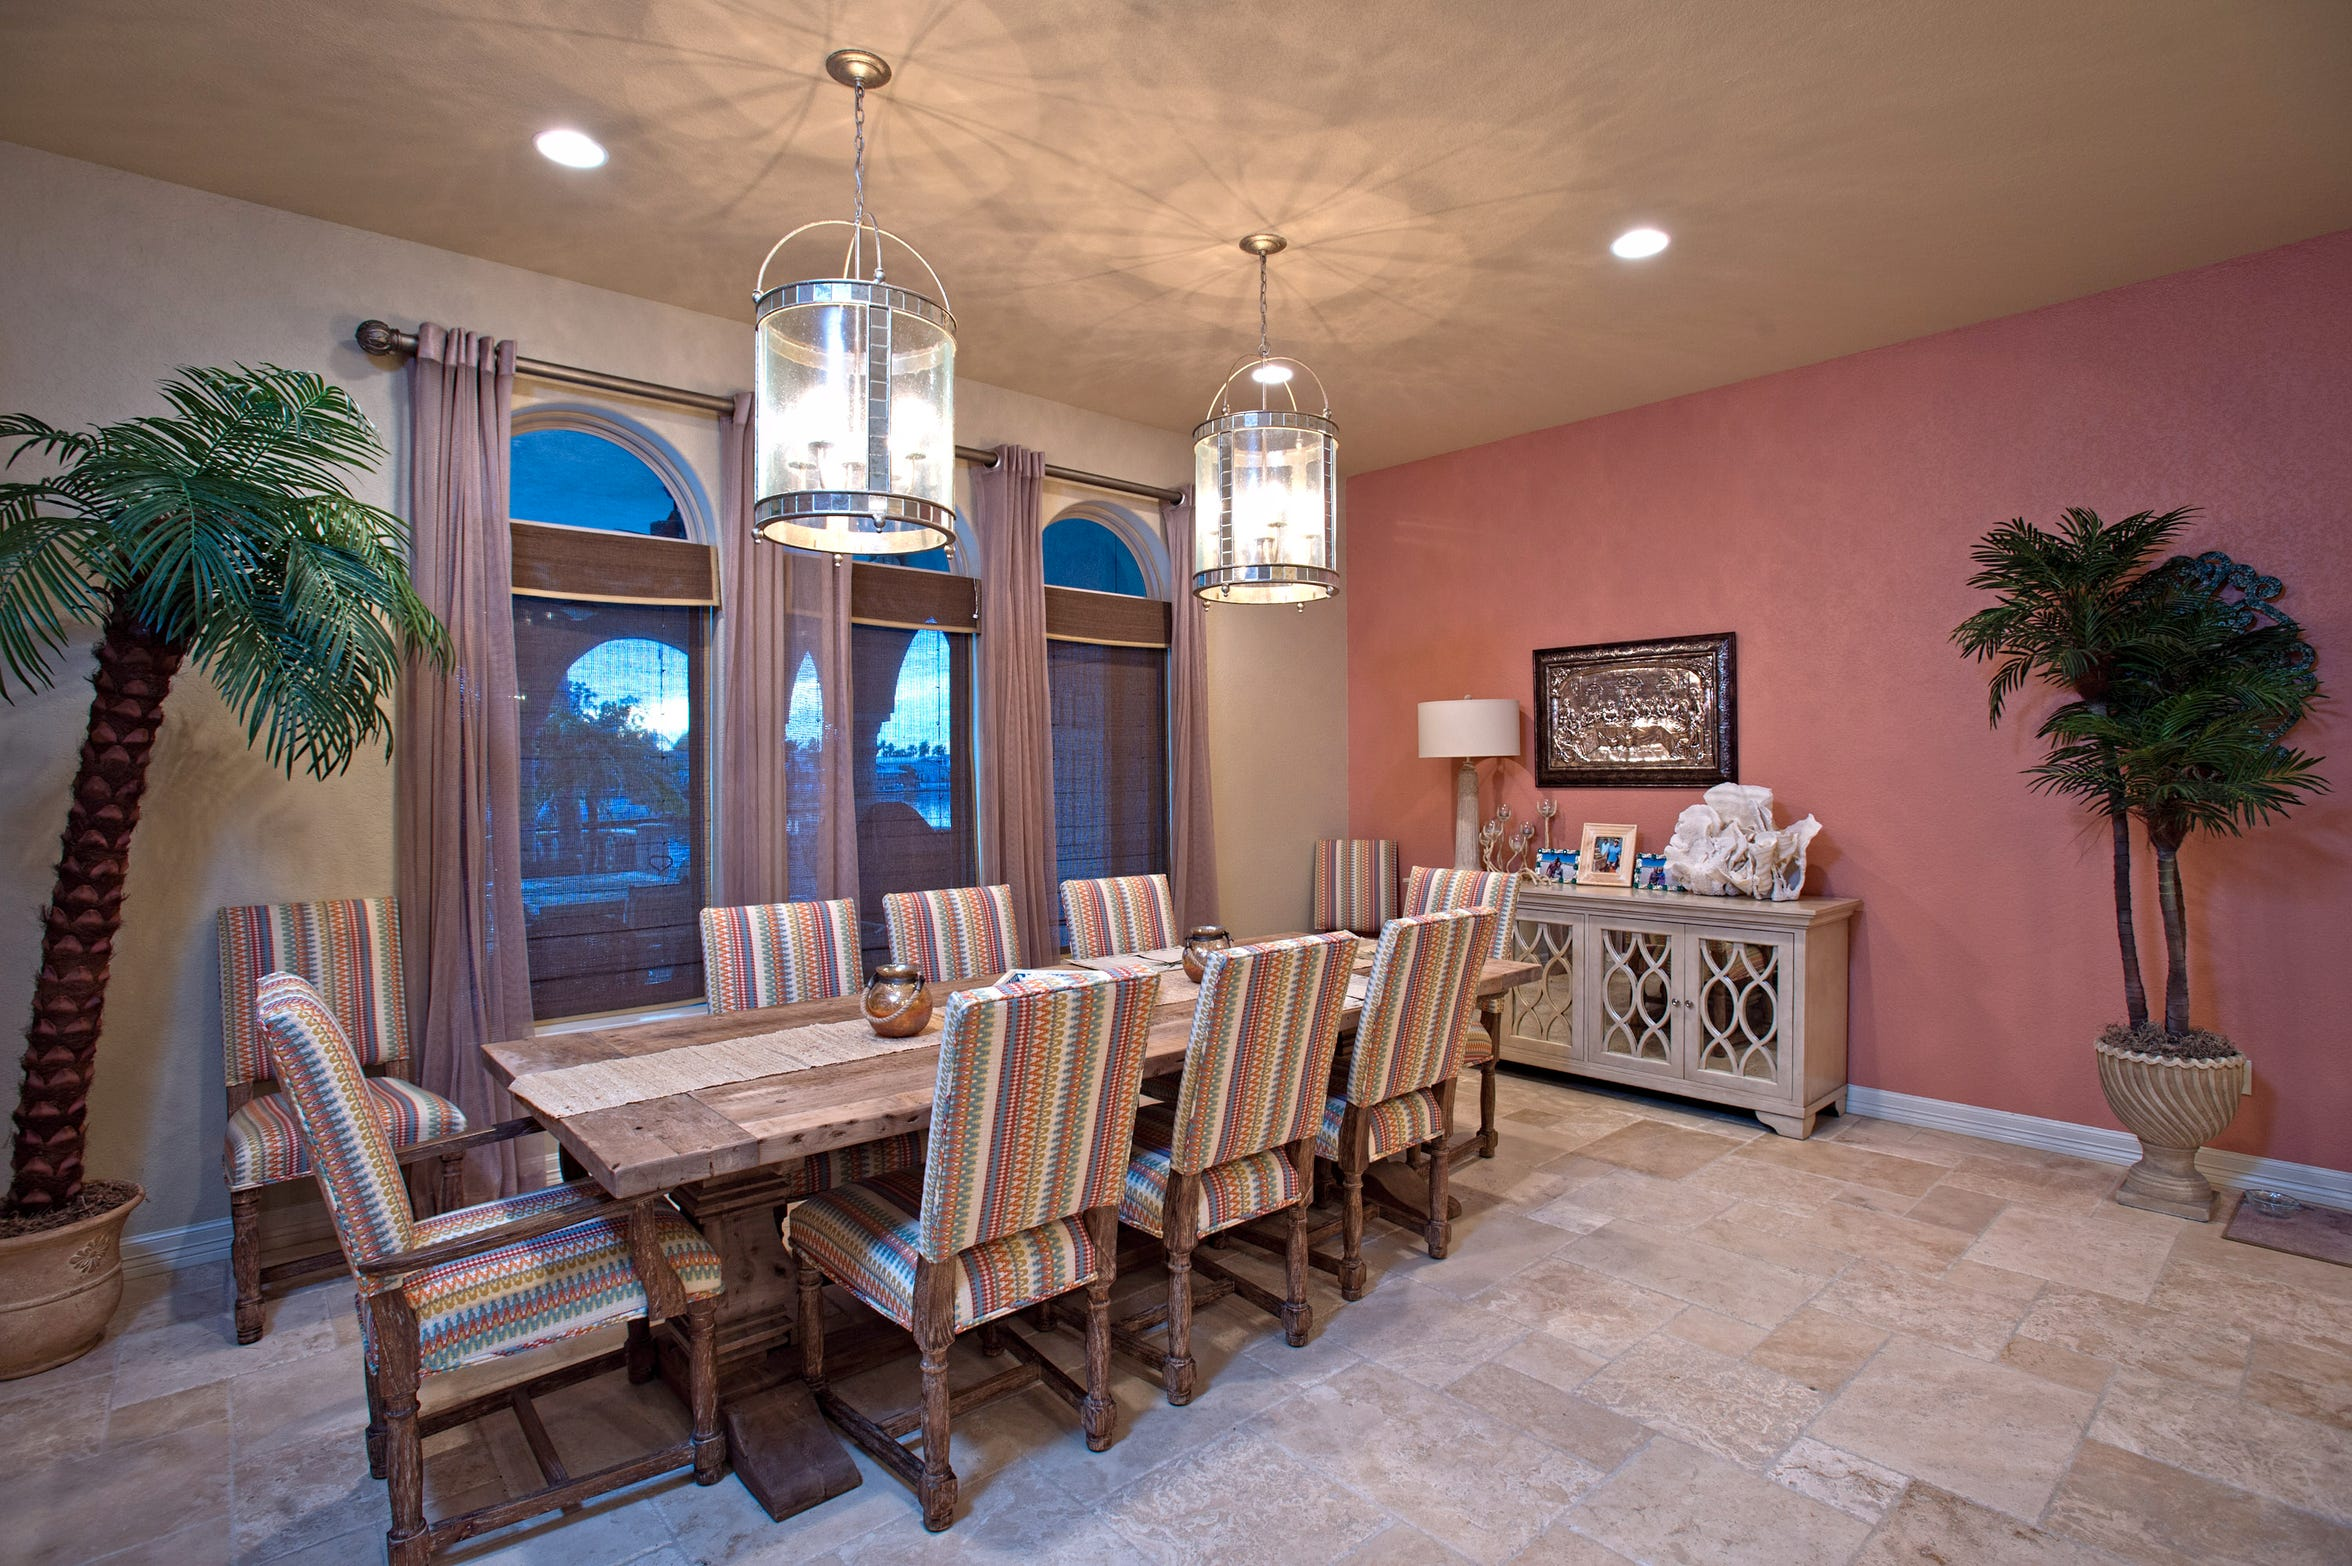 The open dining space adjacent to the kitchen overlooks the water via three large arch topped windows.